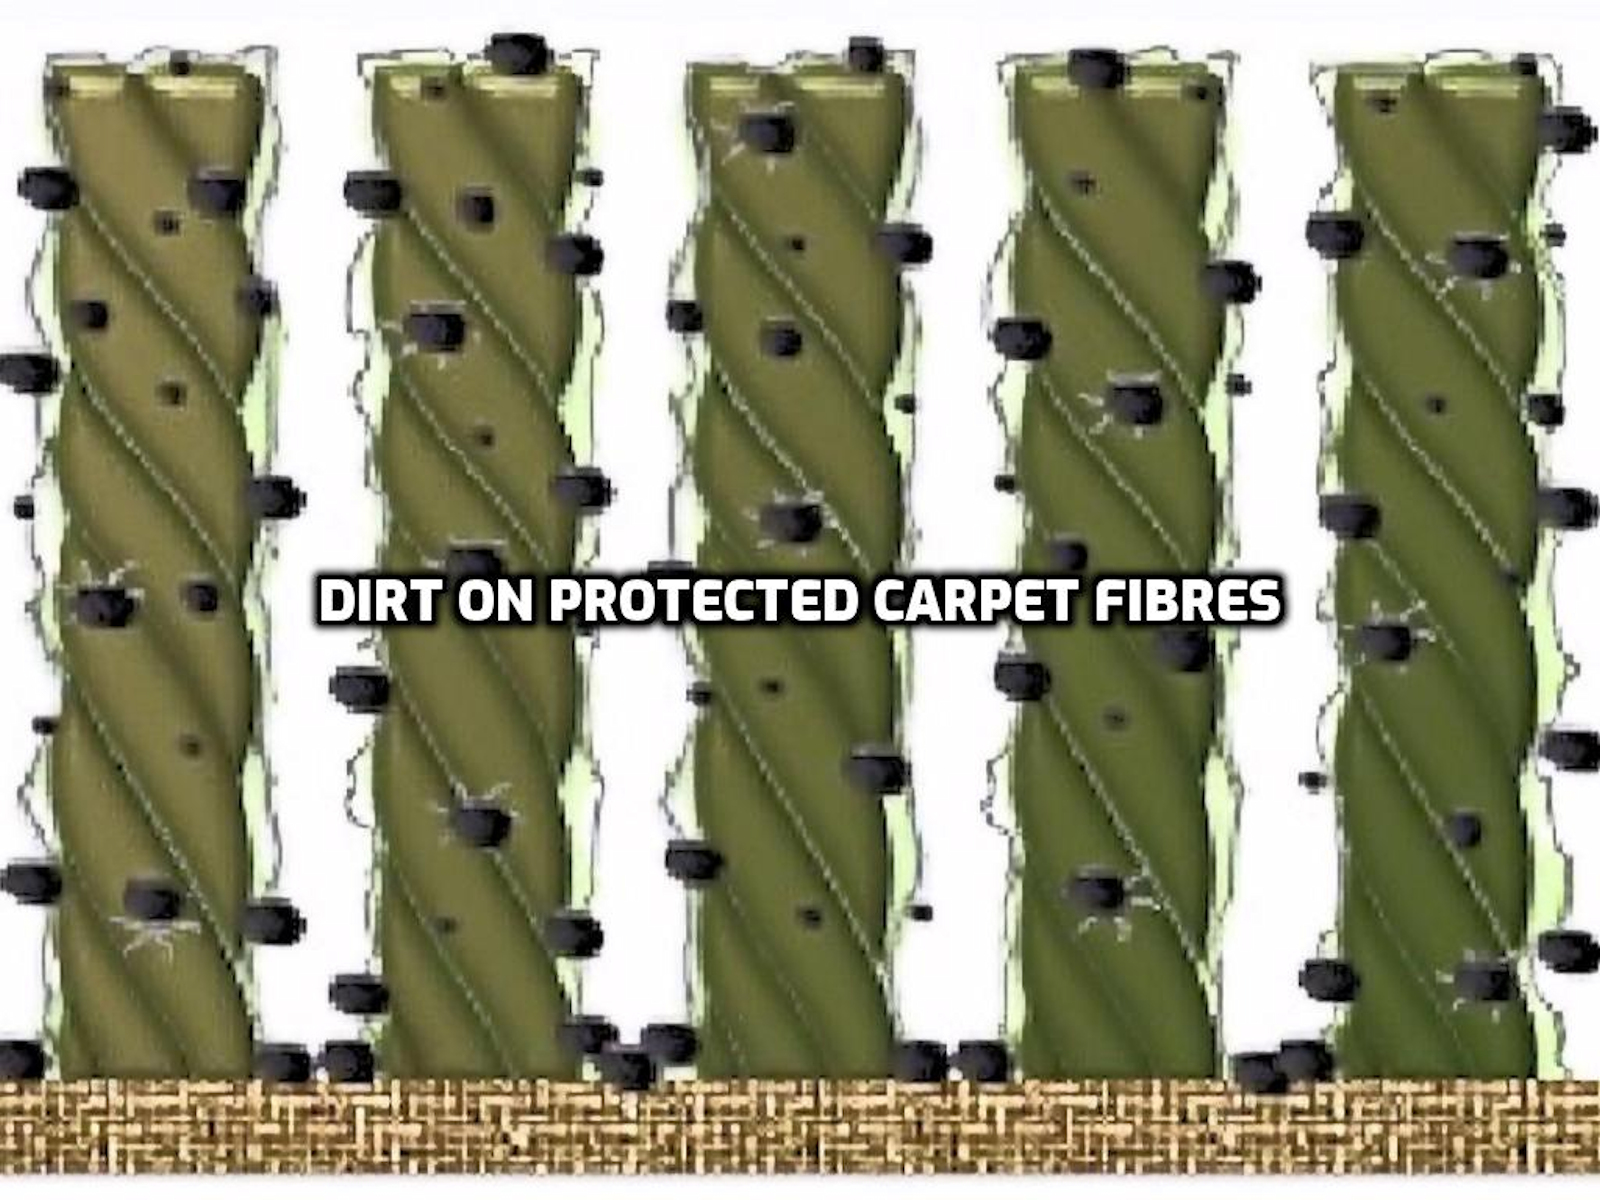 When the protector is worn it leaves fibres vulnerable to dirt